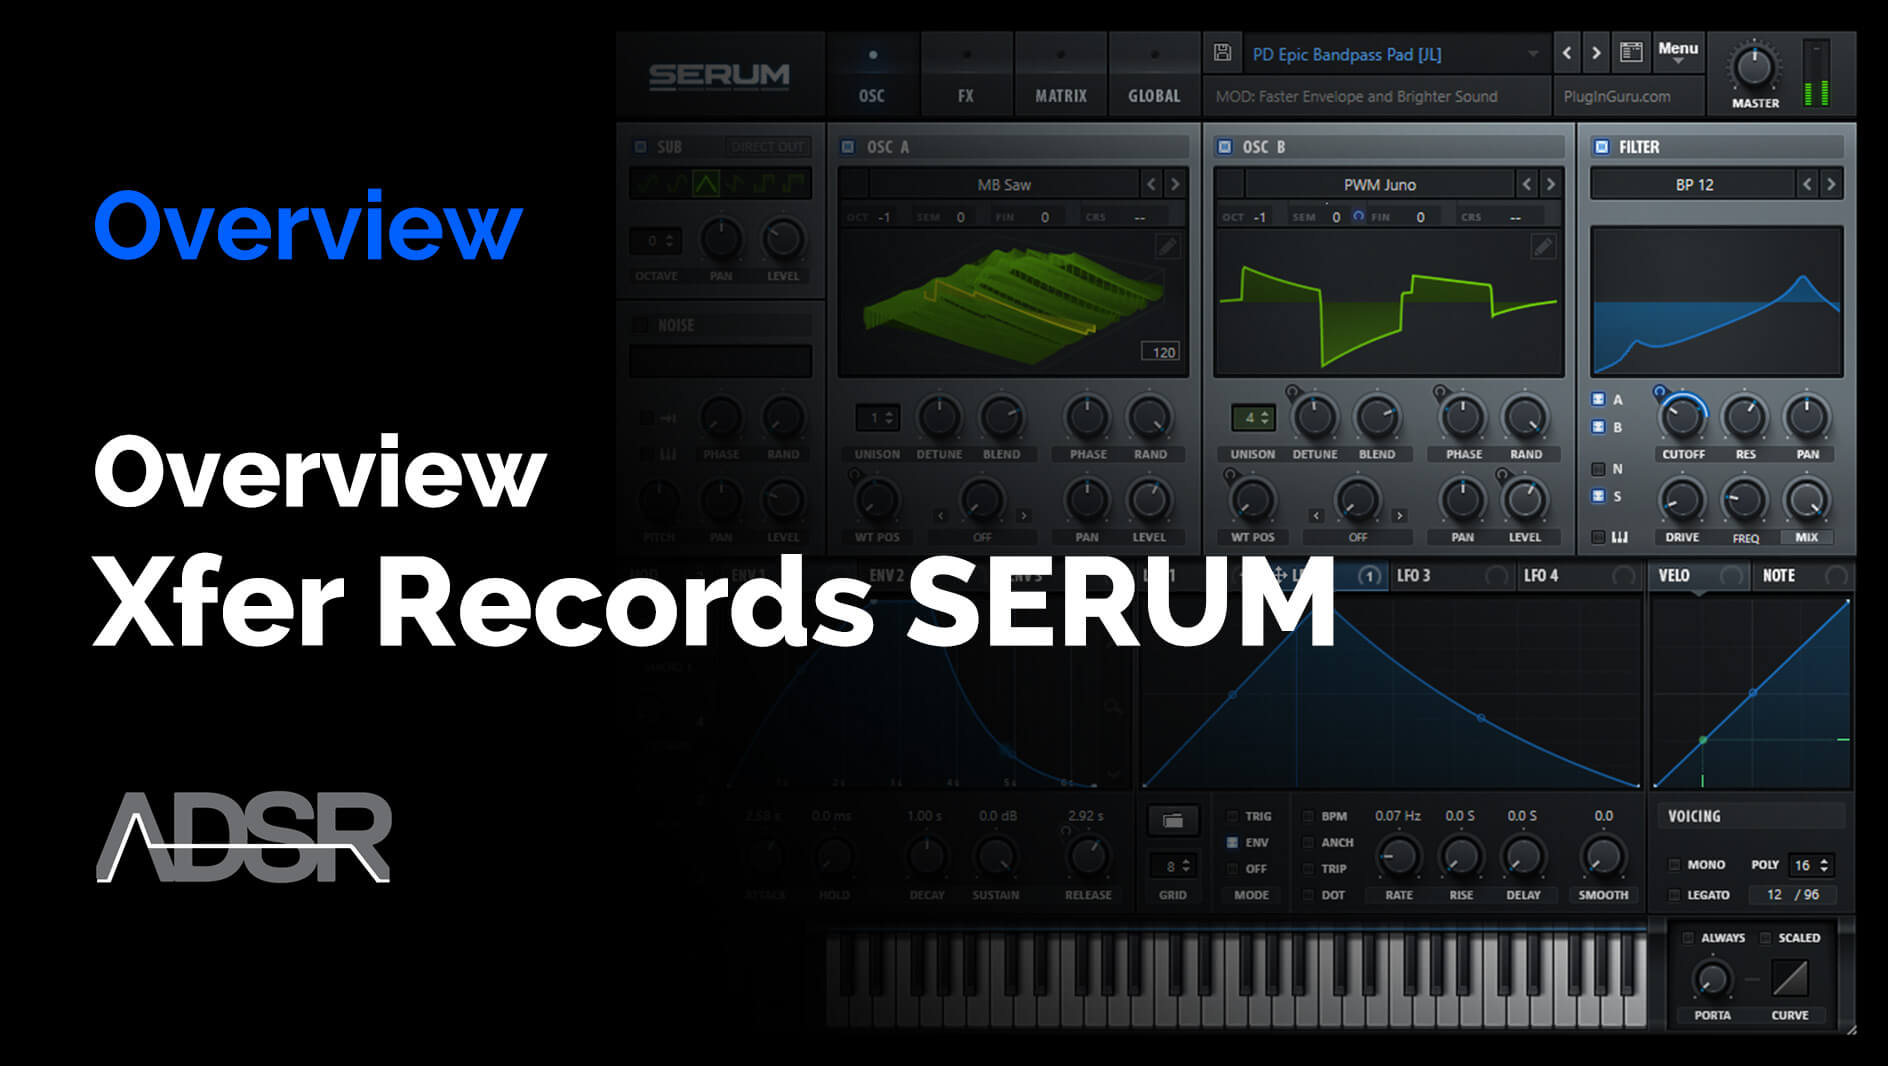 Video related to Serum